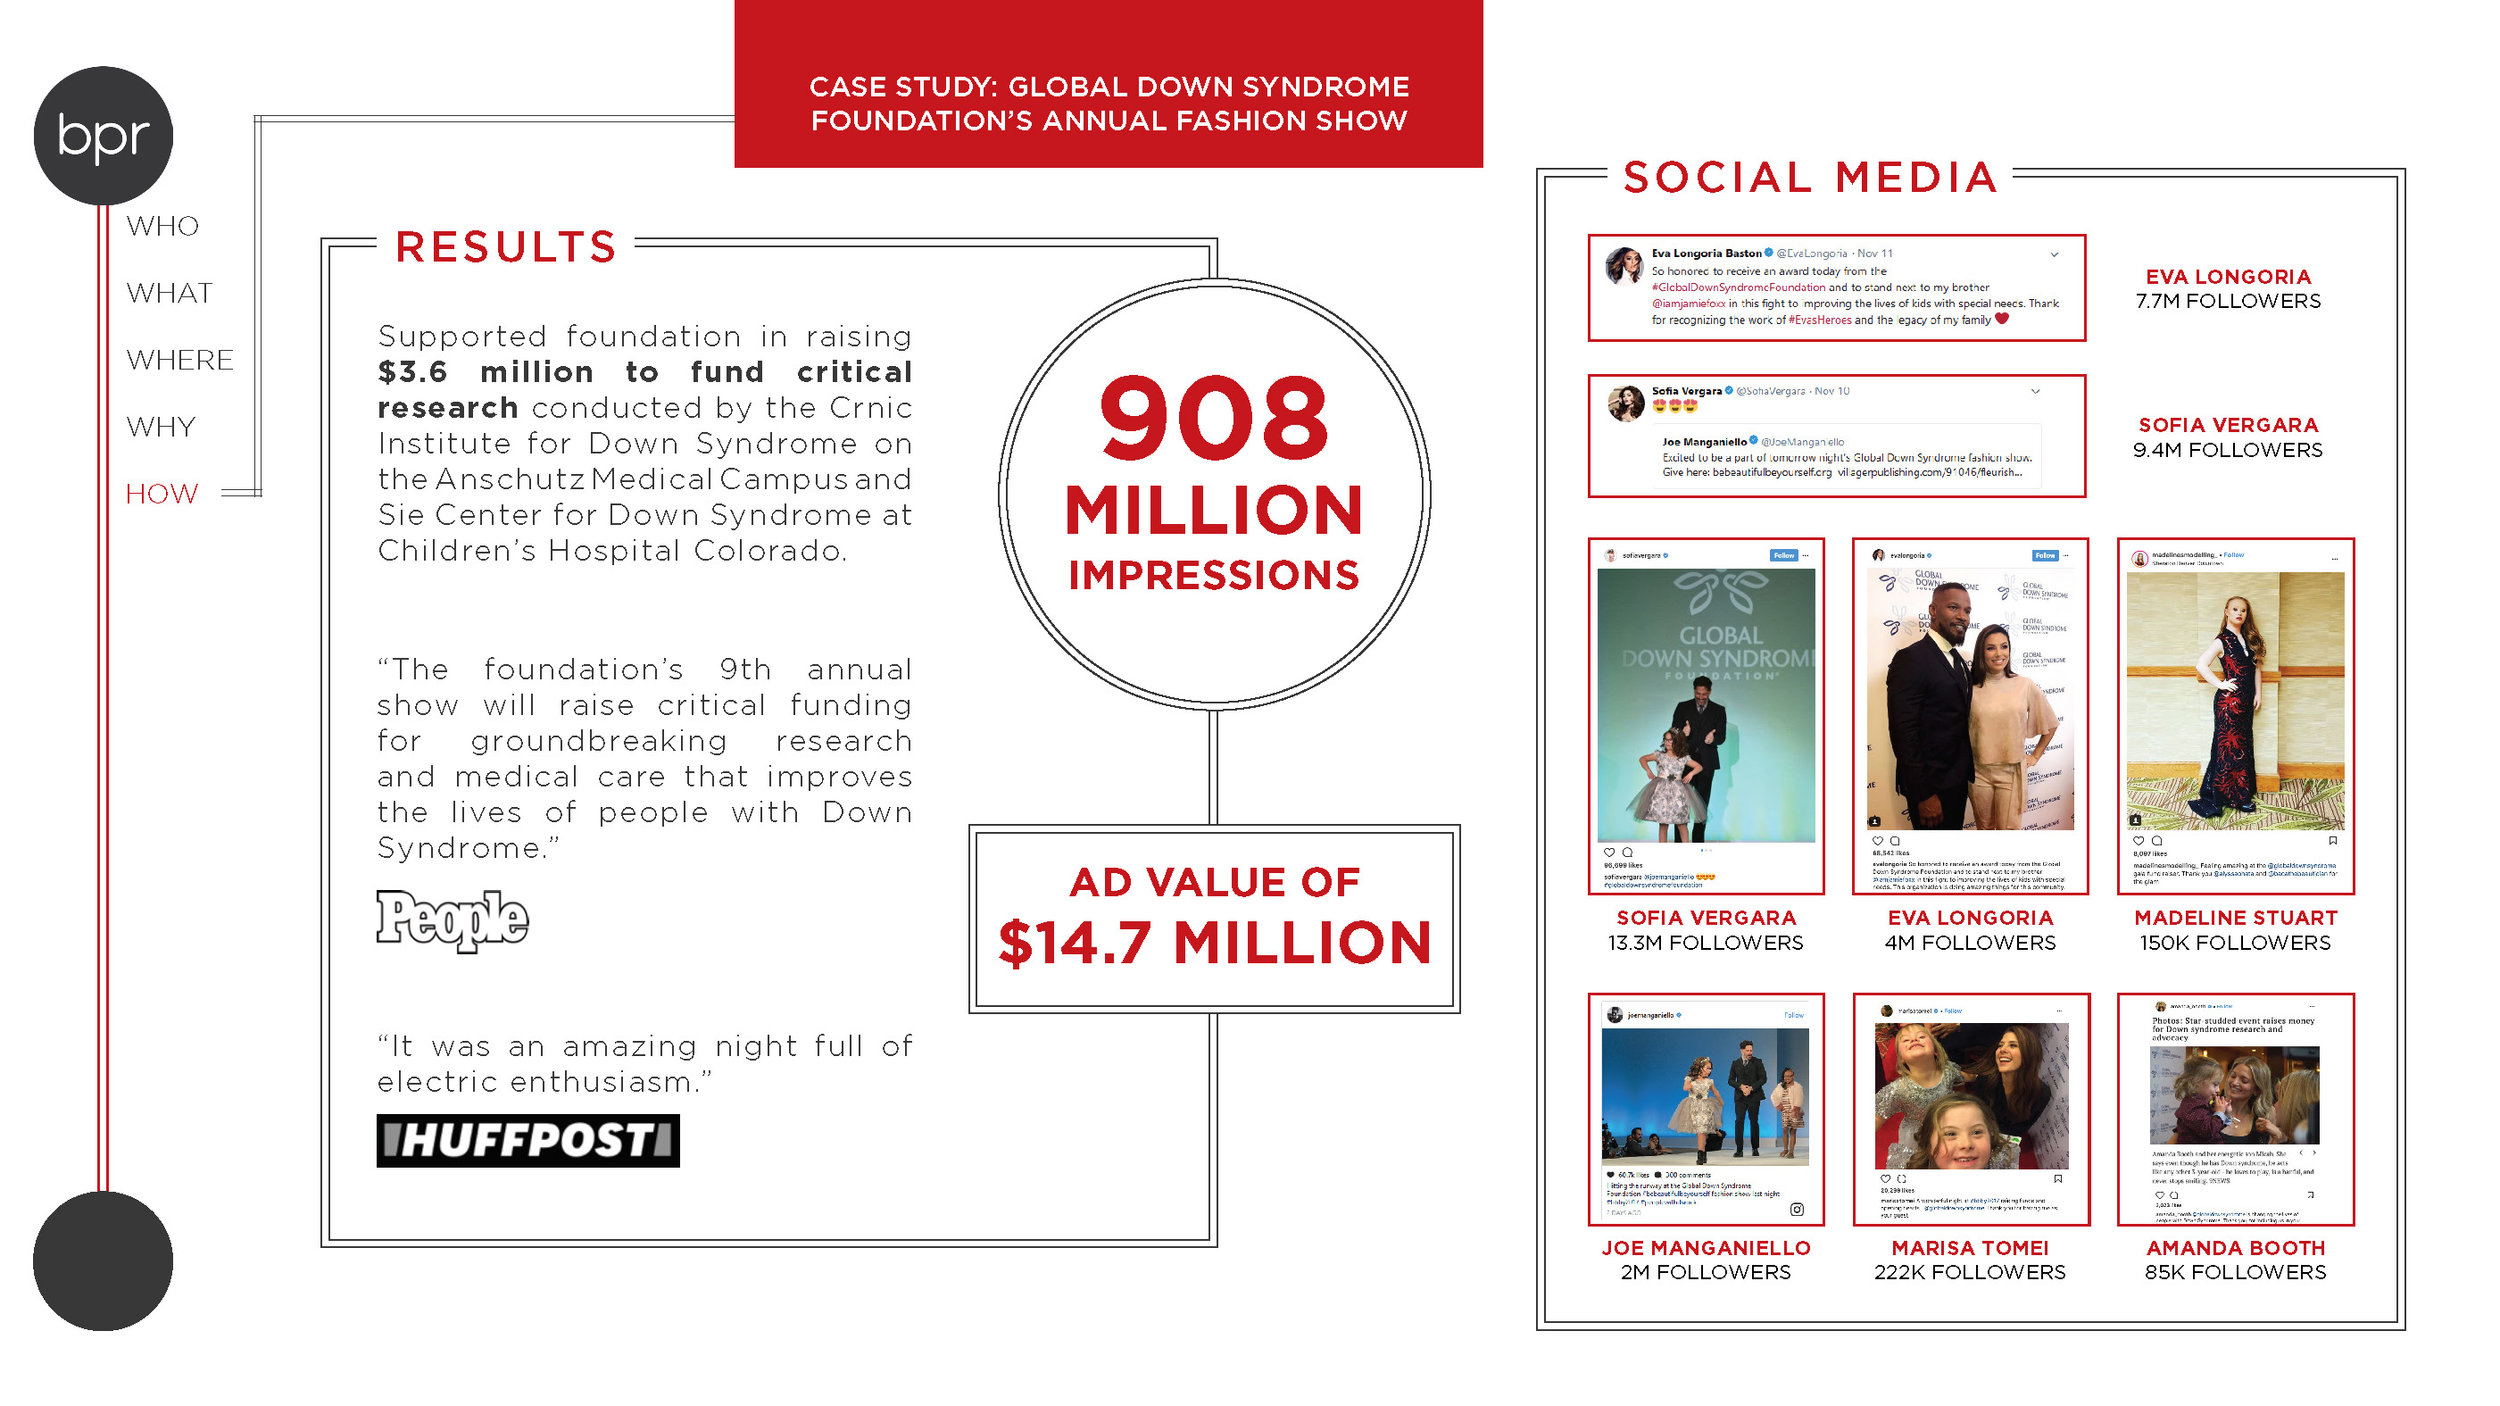 Global Down Syndrome Fashion Show Case Study_Page_3.jpg